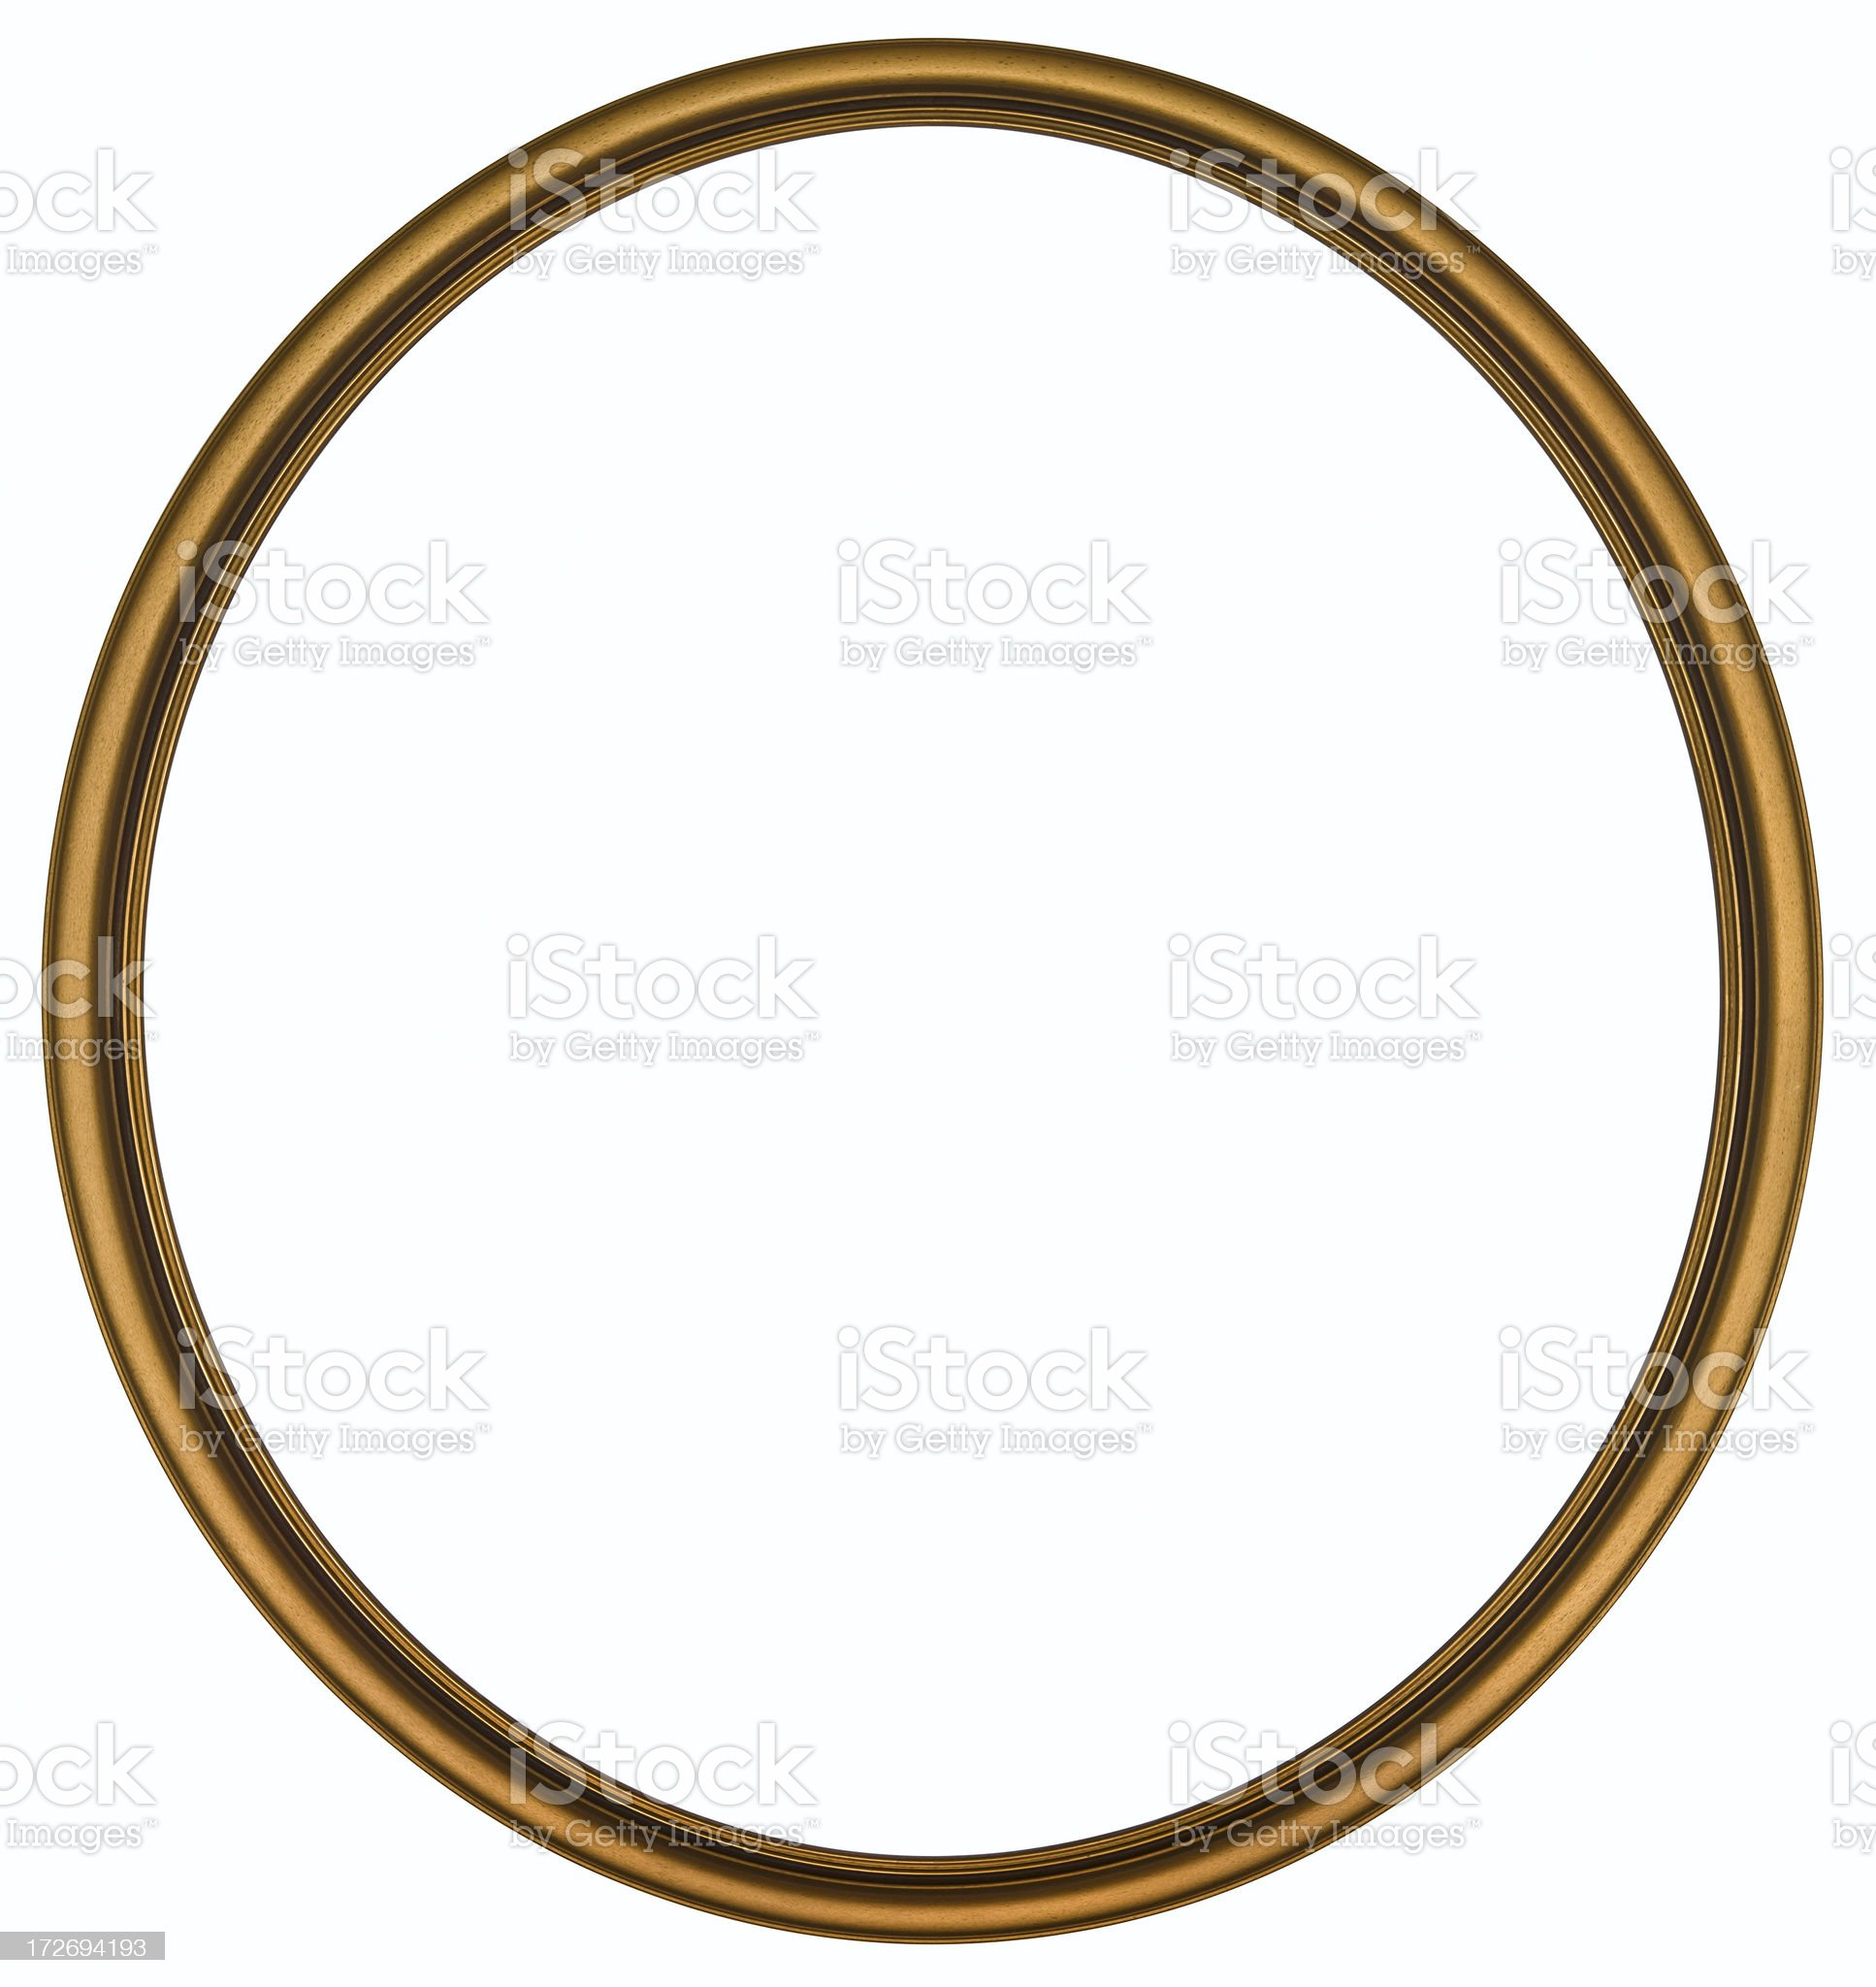 Antique Gold Round Picture Frame. Isolated with Clipping Path royalty-free stock photo